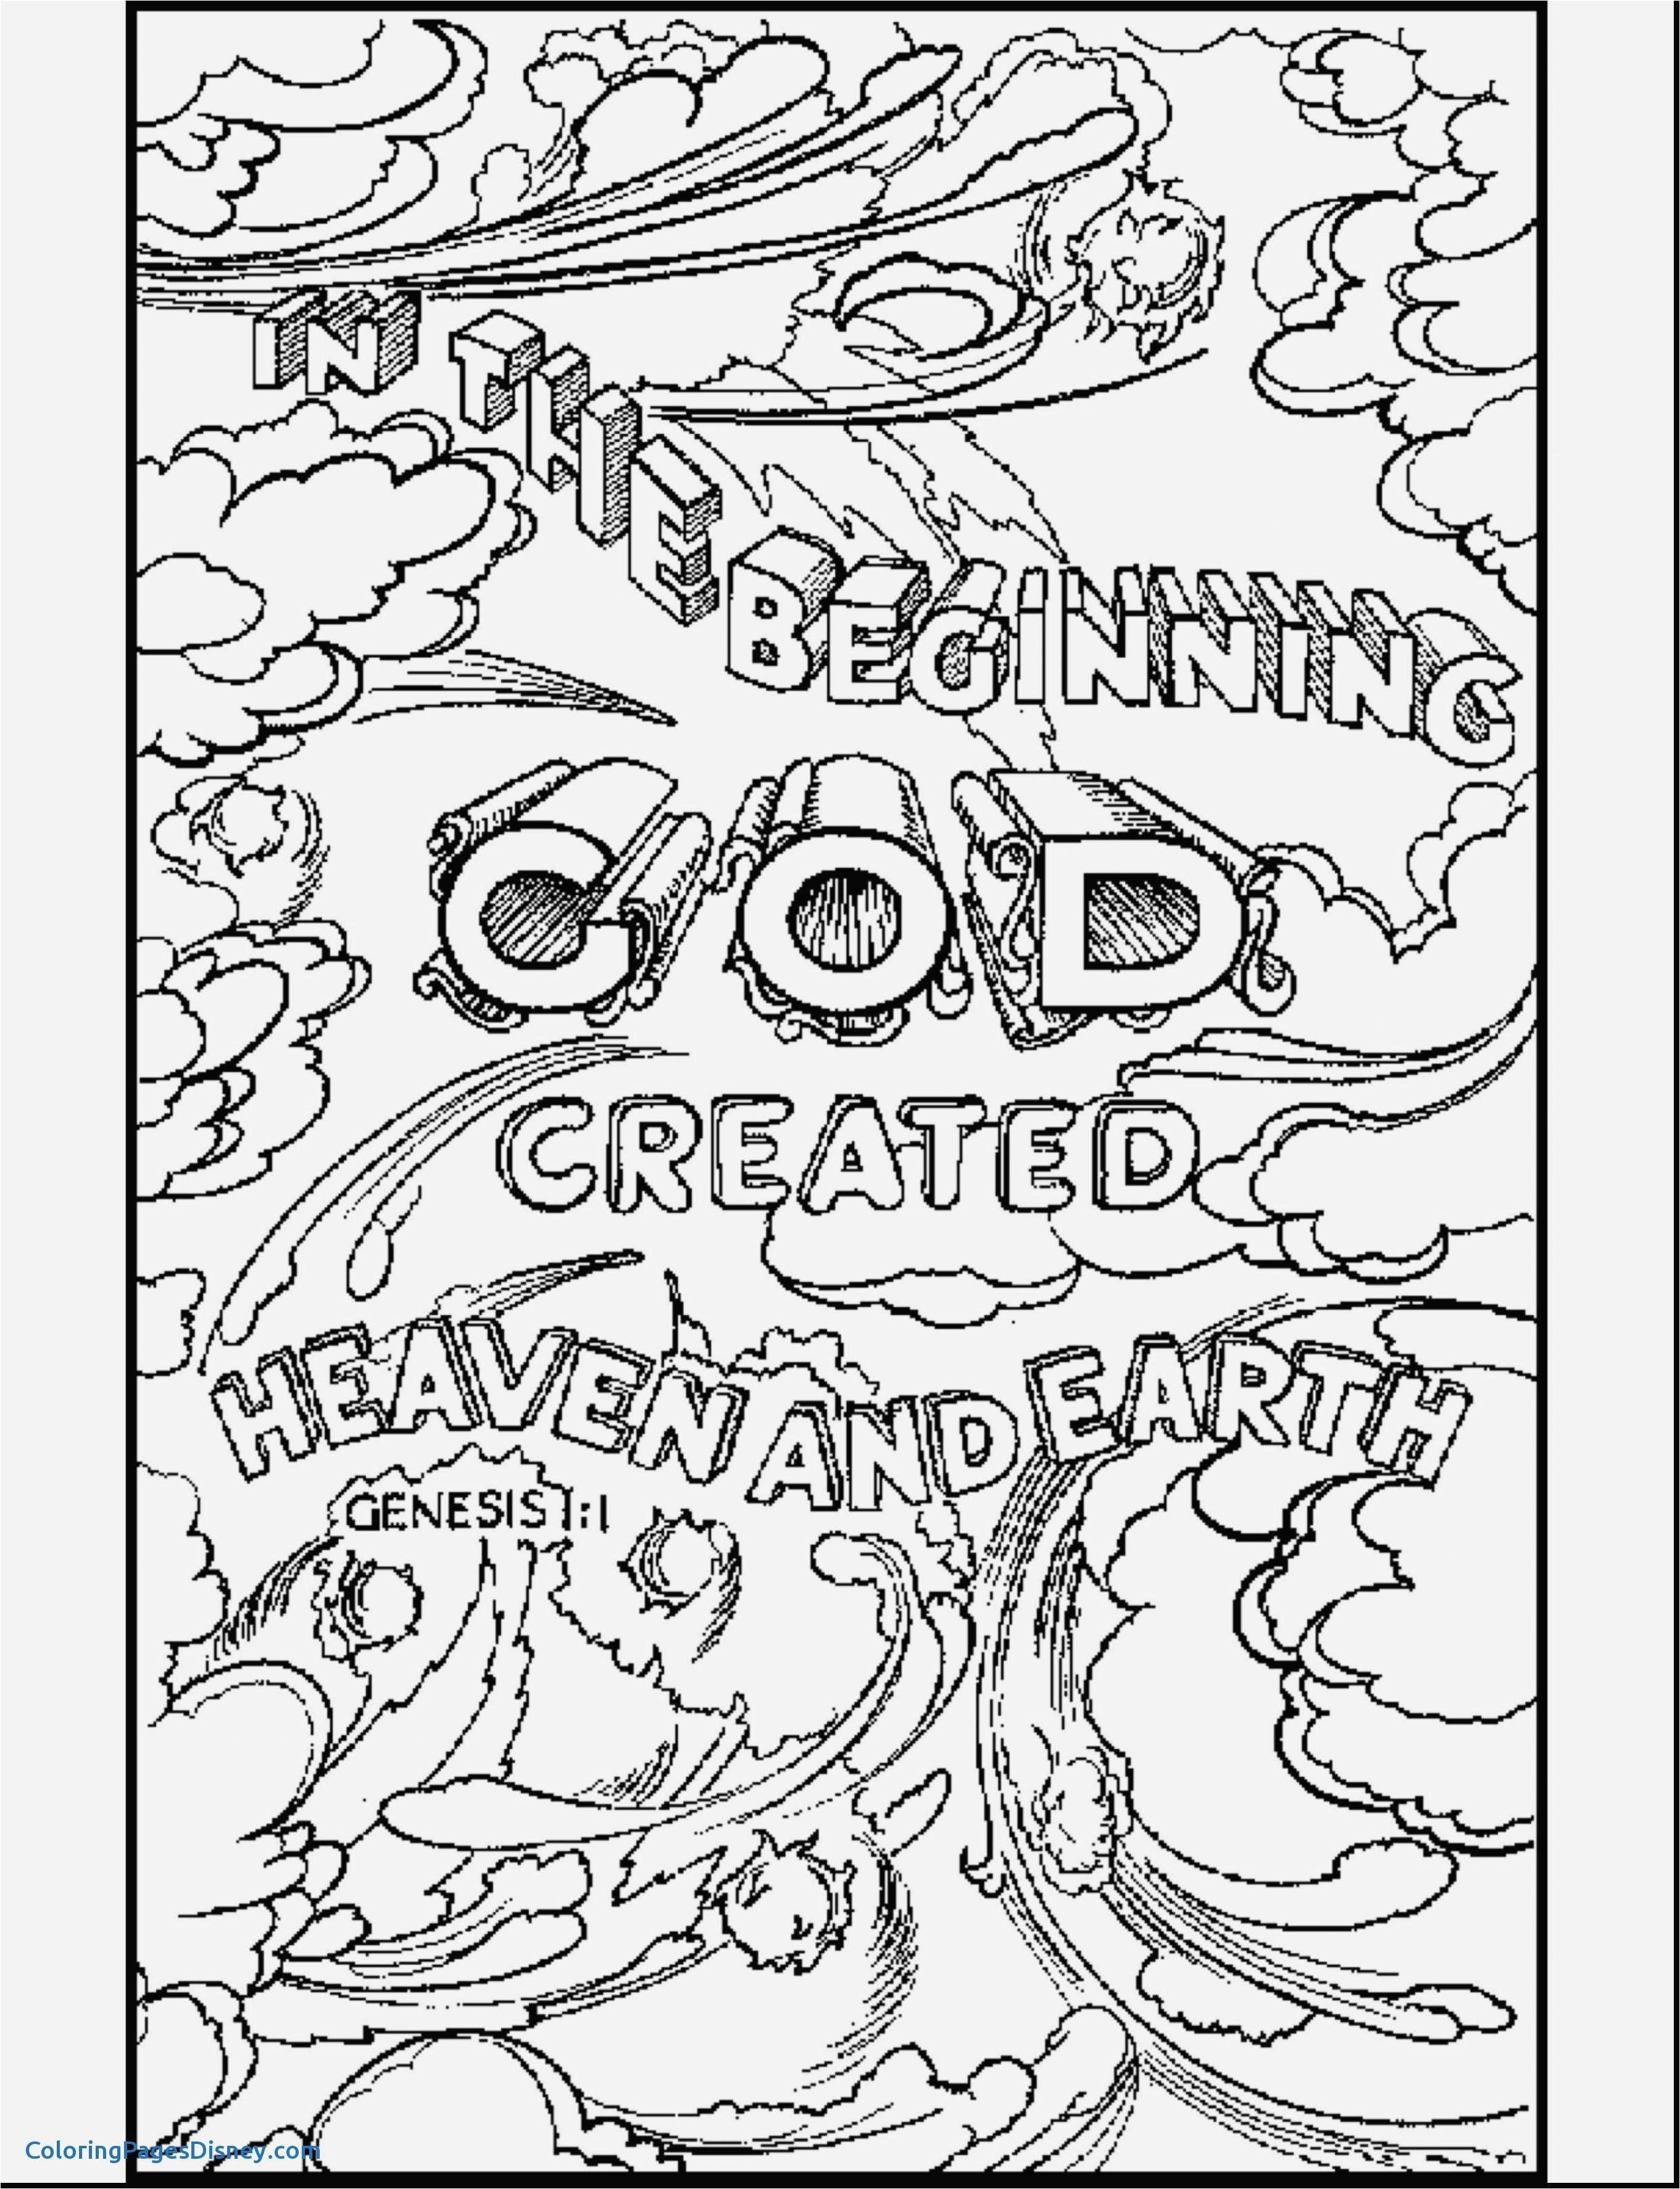 free bible coloring pages Download-Free Free Printable Bible Coloring Pages with Scriptures New Printable Home Coloring Pages Best Color Sheet 17-i